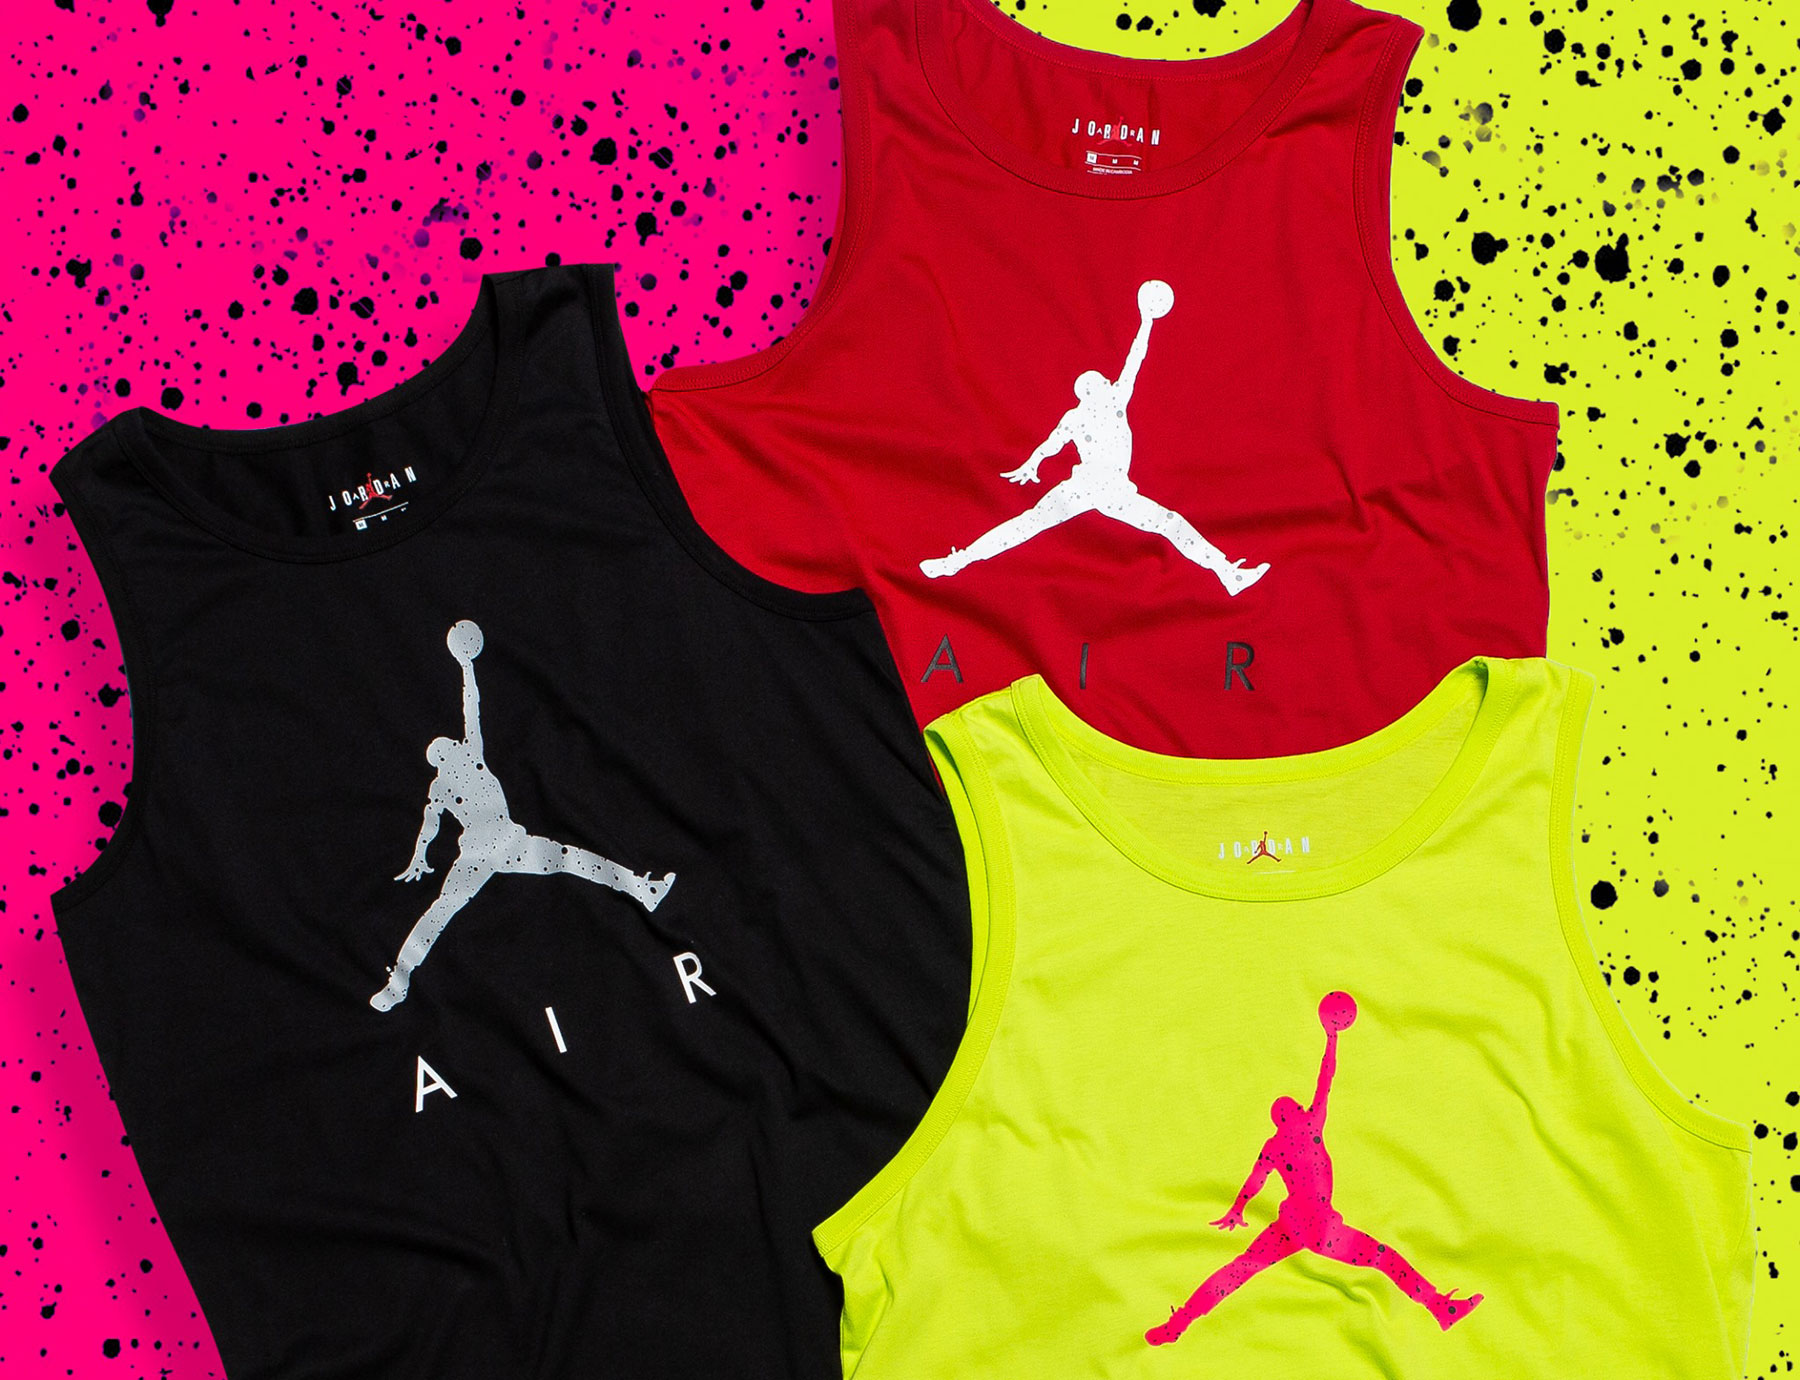 jordan-poolside-summer-tank-tops